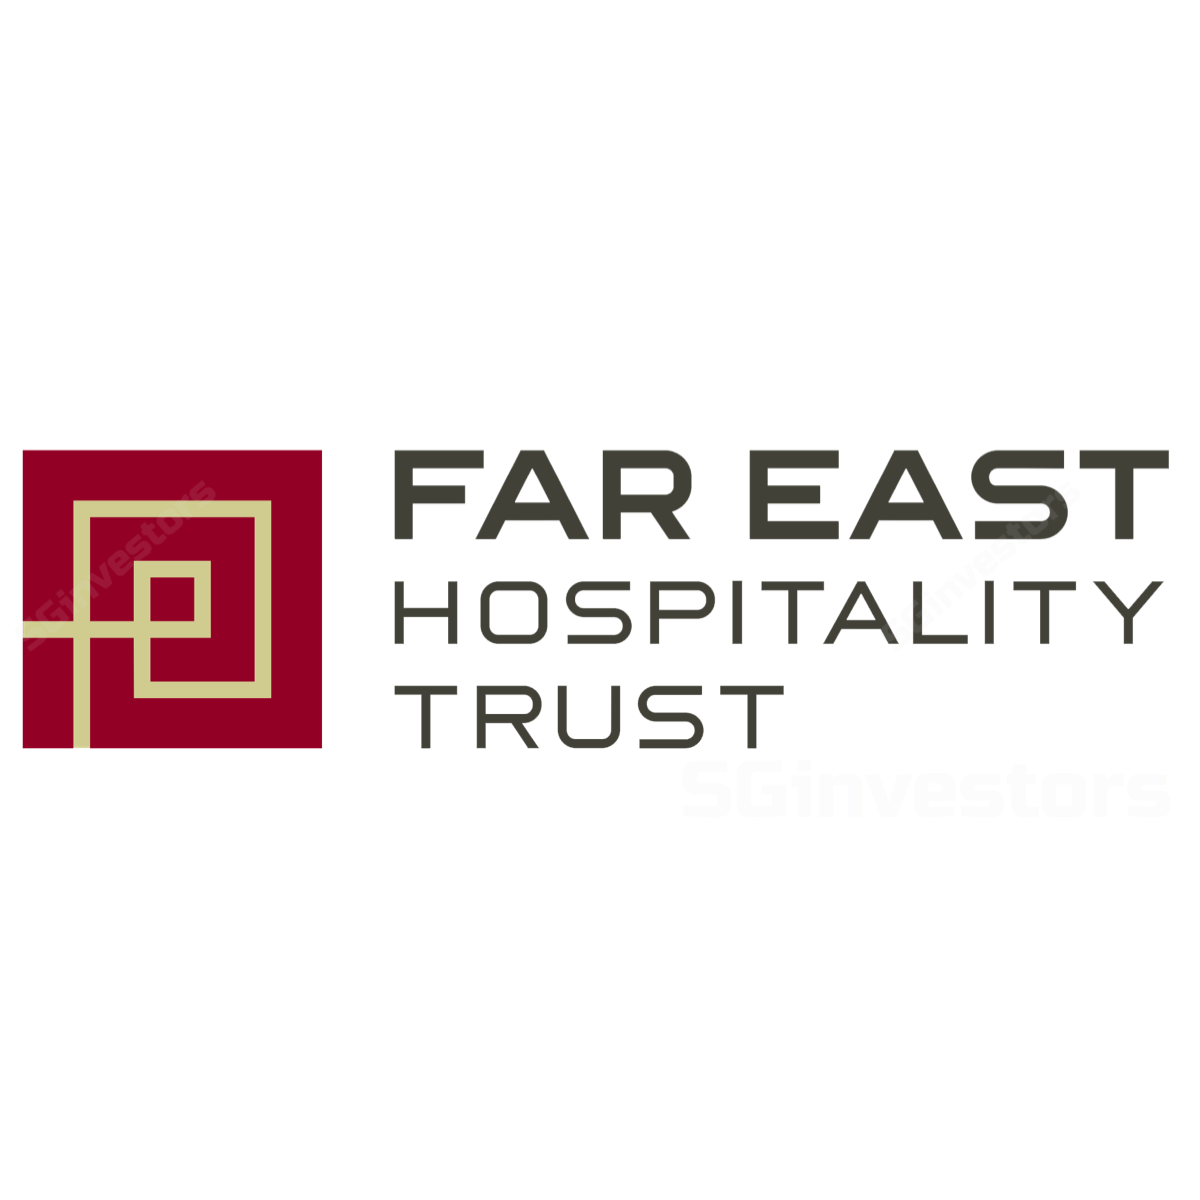 Far East Hospitality Trust - DBS Group Research Research 2018-07-31: Keep The Faith Still On The Recovery  Path